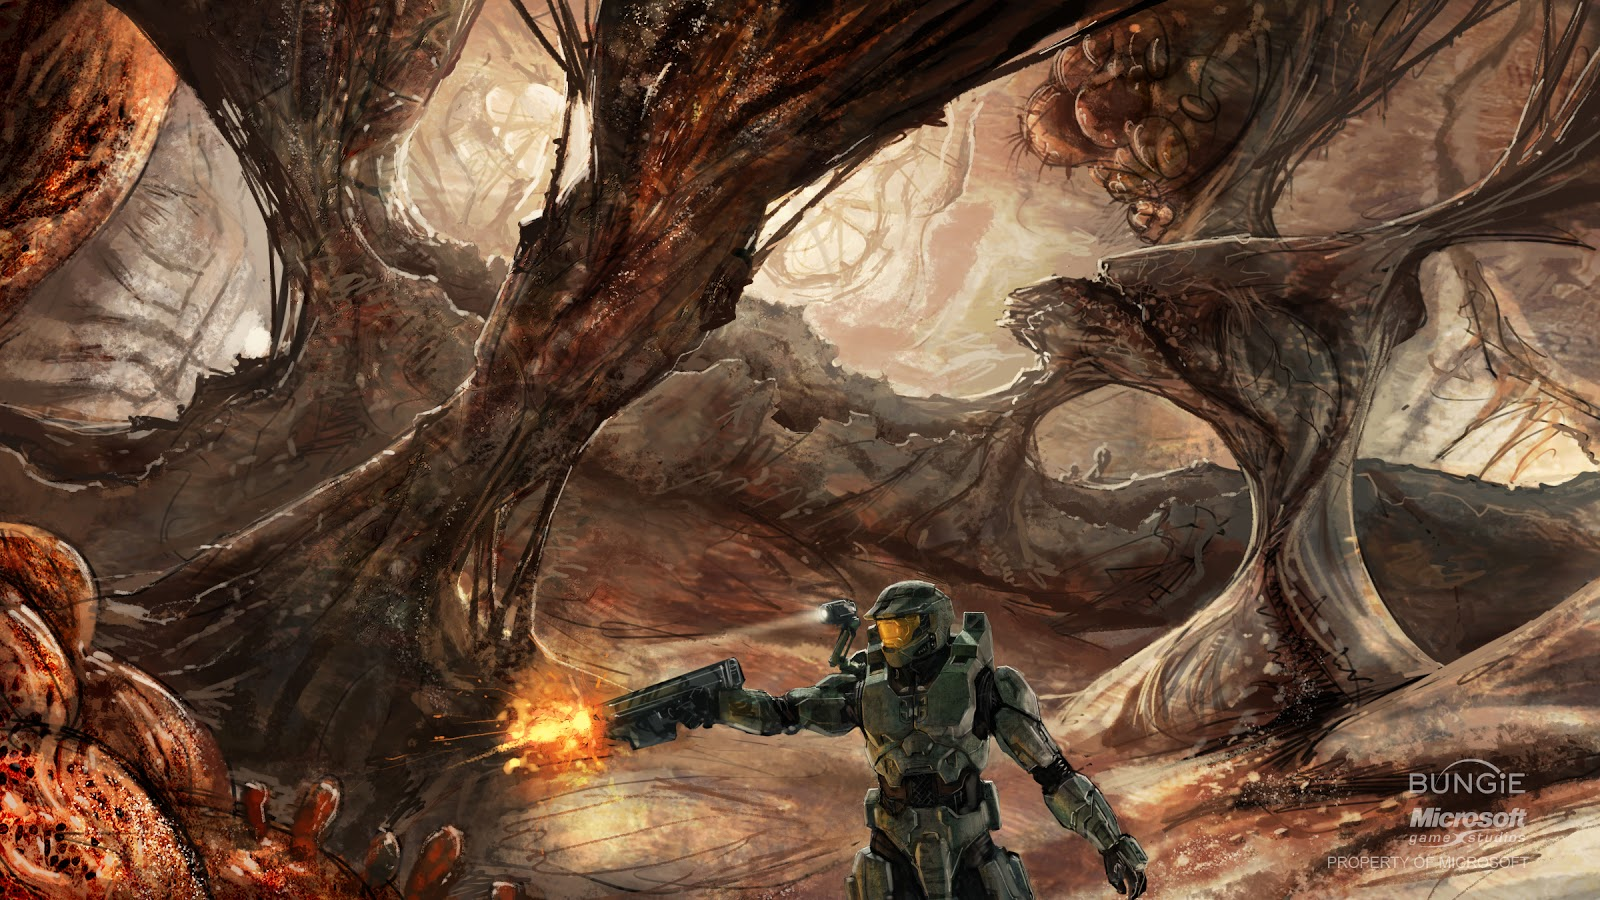 halo the flood 2018-2-11 outflood the flood achievement in halo wars 2: built and held a minibase on every slot of a map at the same time (terminus firefight) - worth 15 gamerscore.